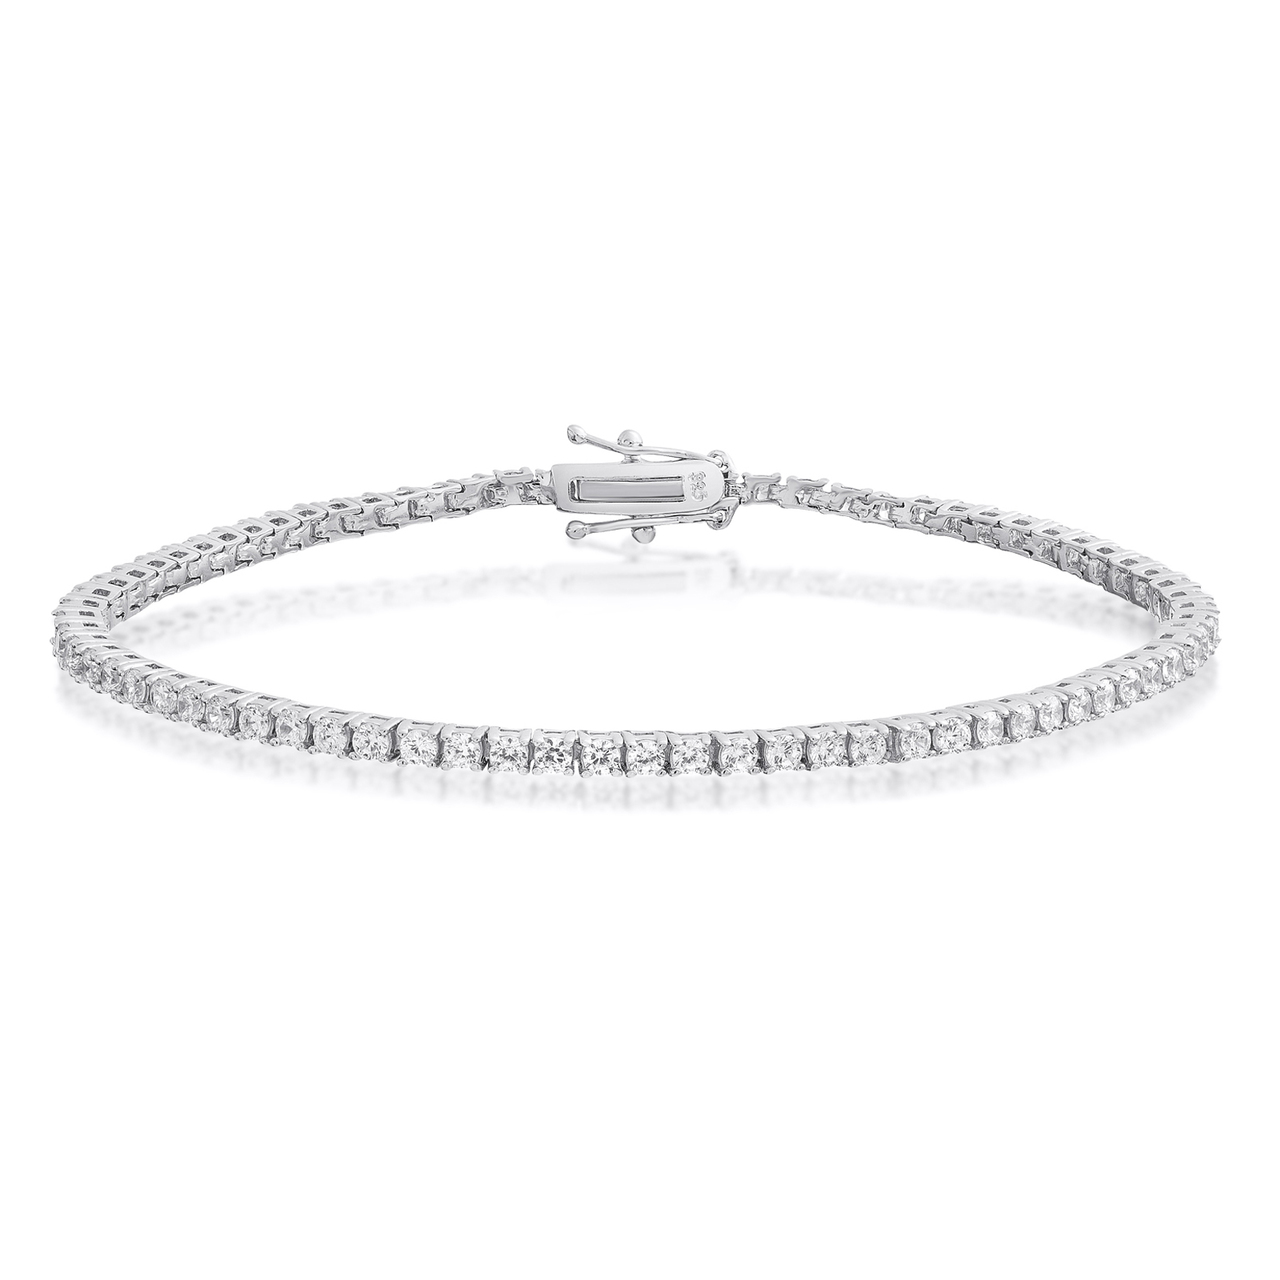 Brilliant Cut Zircon Cubic Black 925 Silver 2 MM Tennis Bracelet